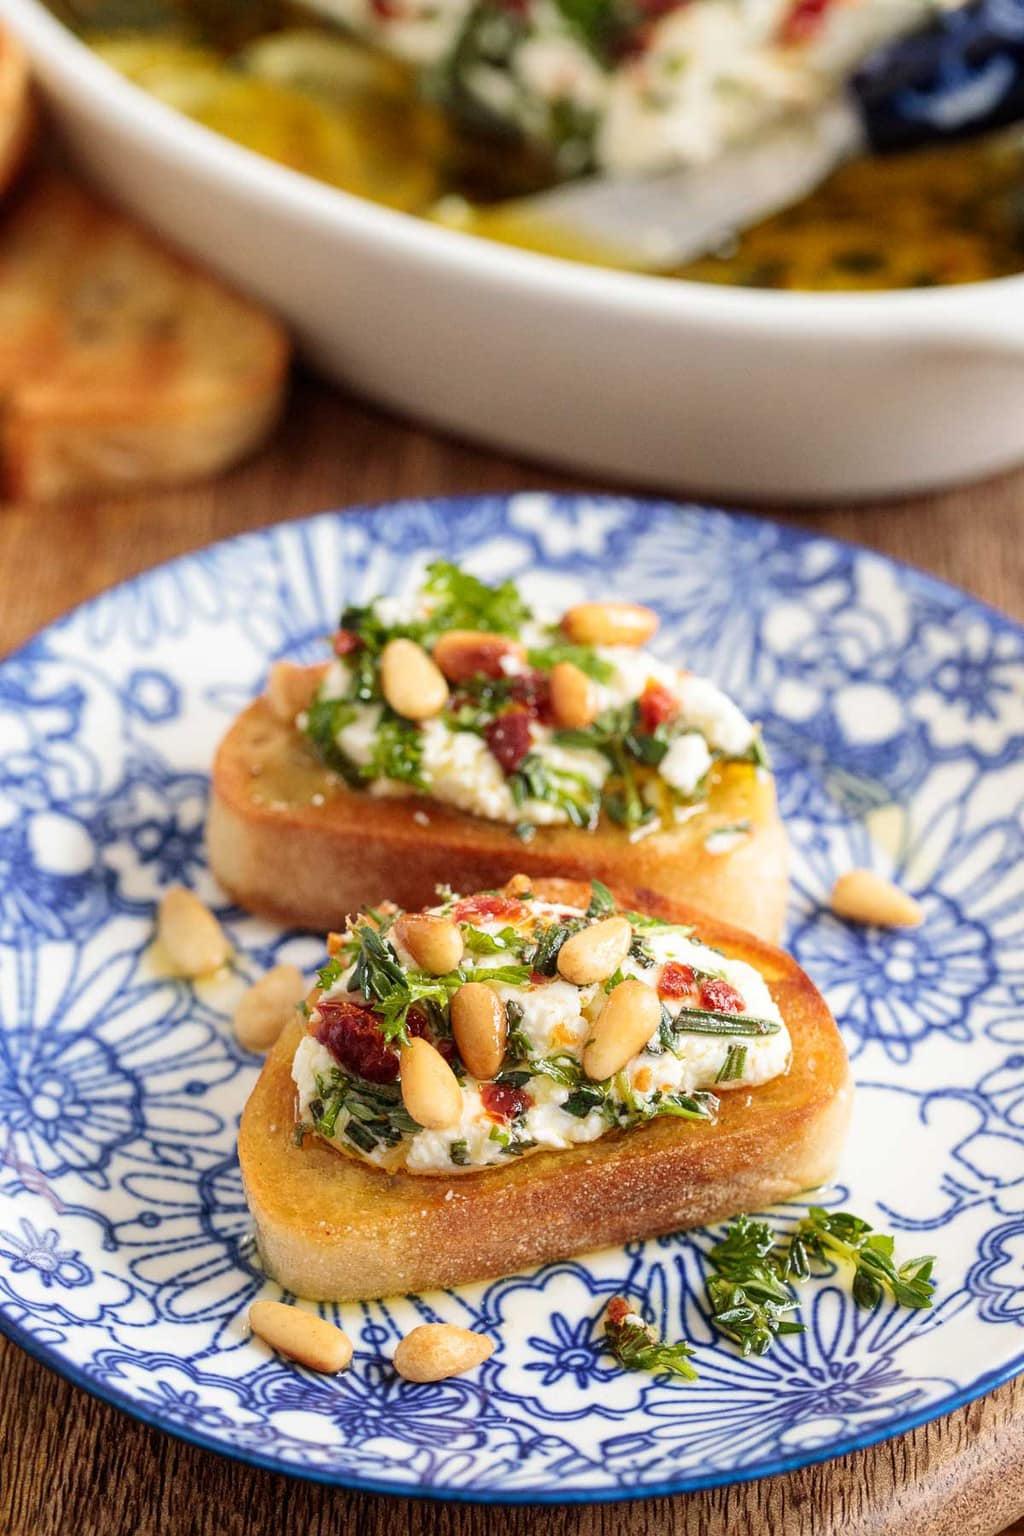 Closeup photo of warm crusty French bread slices spread with Herb Marinated Goat Cheese.